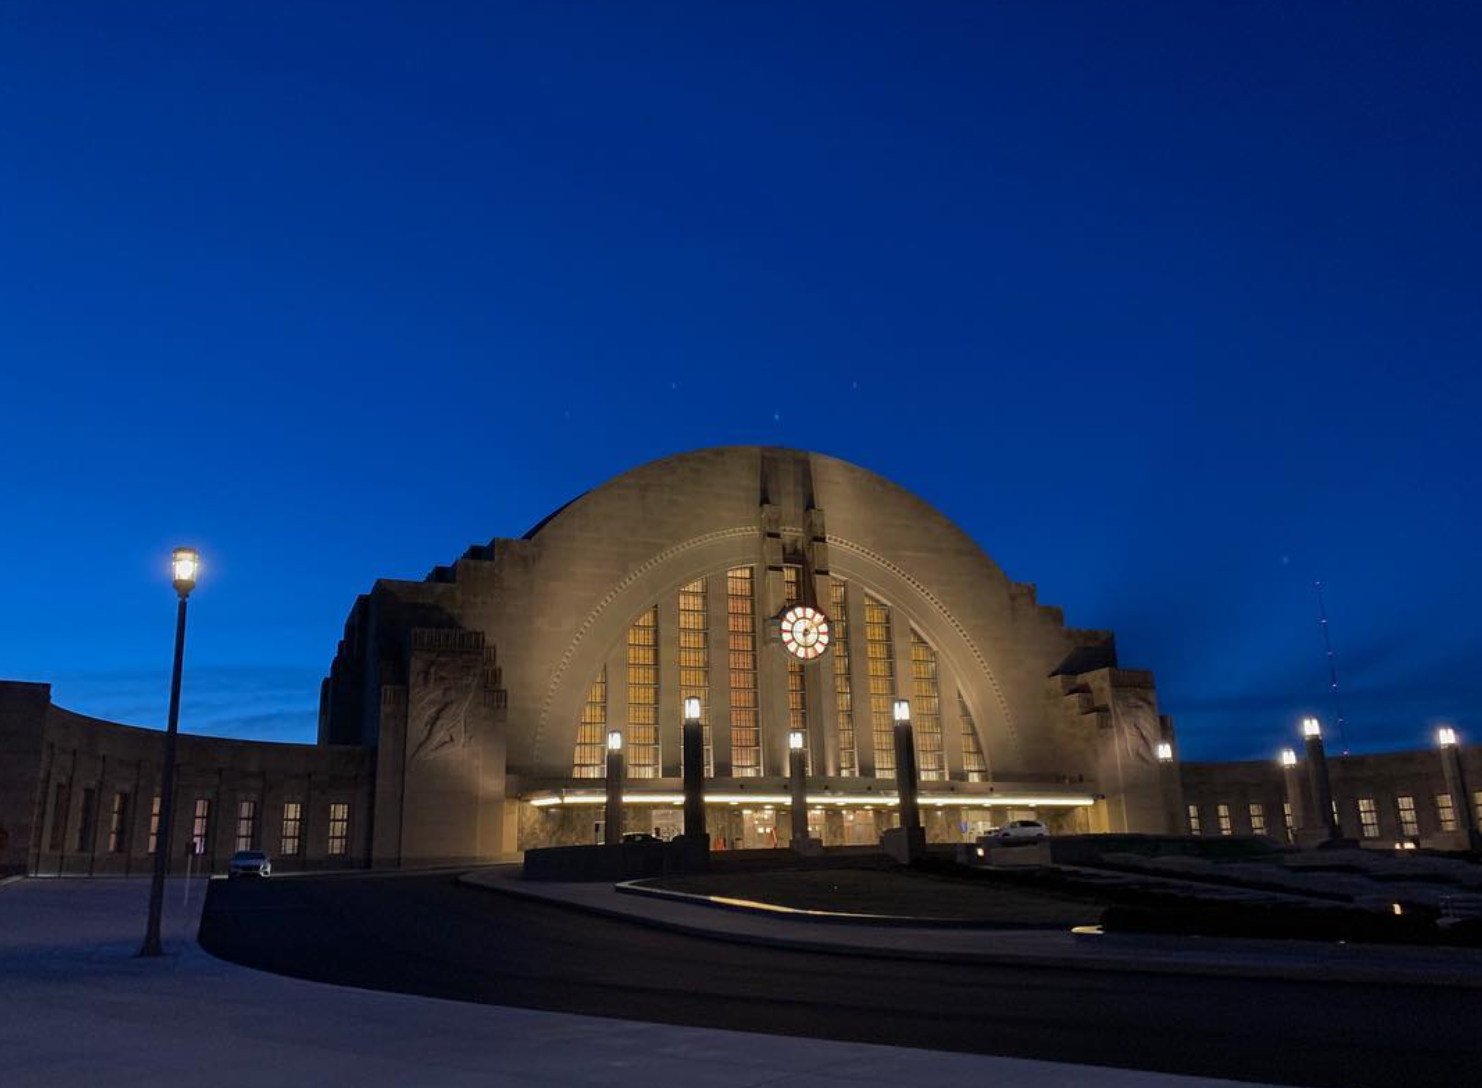 Wednesday's clear skies left Union Terminal, one of Cincinnati's most historic sites glowing this week. 😍🌠 Five of our Walnut SENIORS will be traveling to Poland and Israel this spring with March of the Living, a trip dedicated to holocaust education and remembrance. If you're looking for a rainy day activity this weekend, or are in the mood to learn we highly recommend a trip to Union Terminal's brand new Holocaust & Humanity Center! photo by: @emmheines